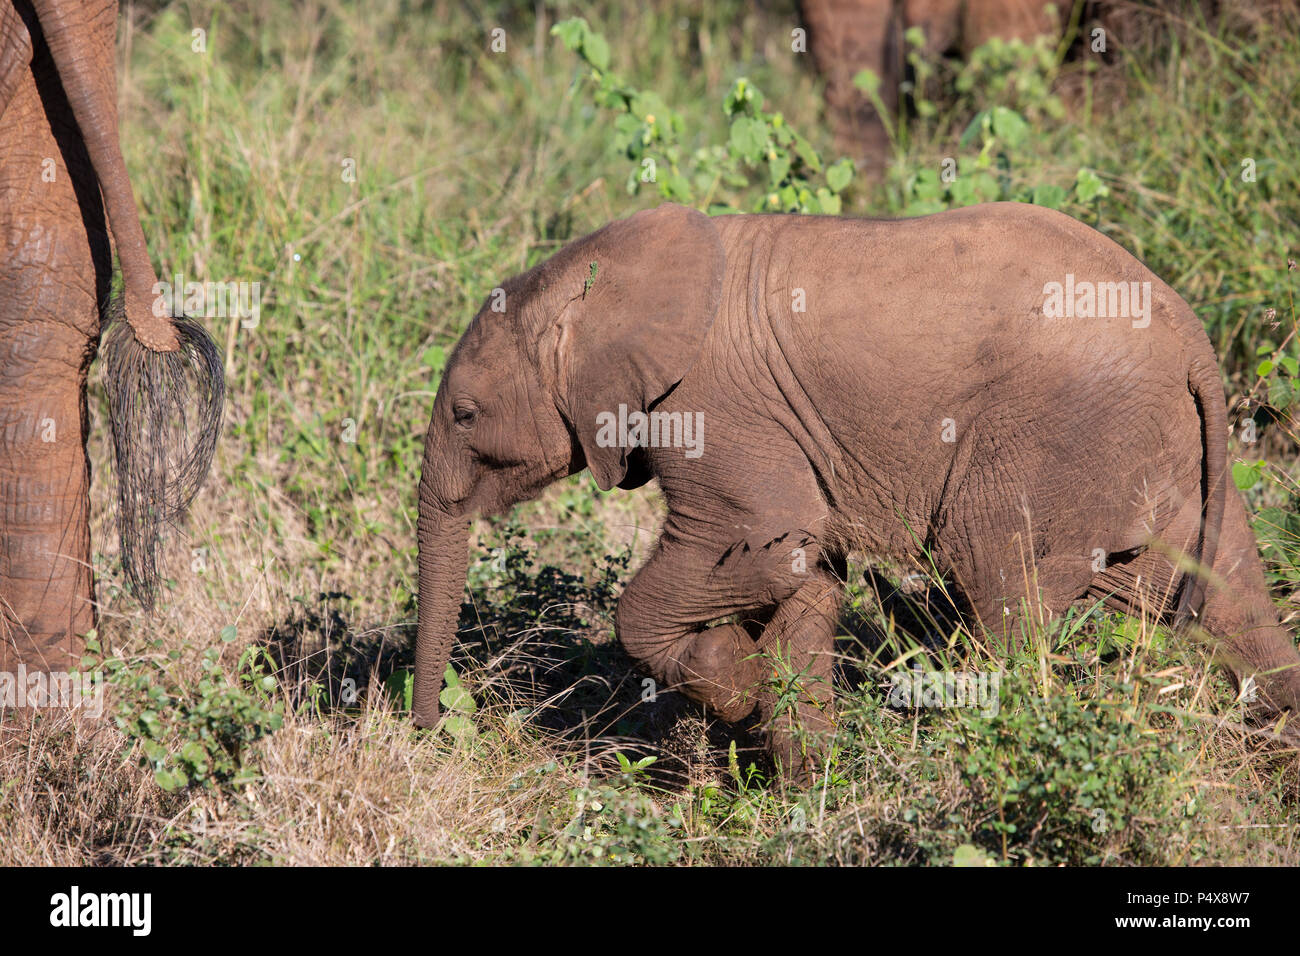 Baby African elephant Loxodonta africana following close behind its mother in the African bush Stock Photo